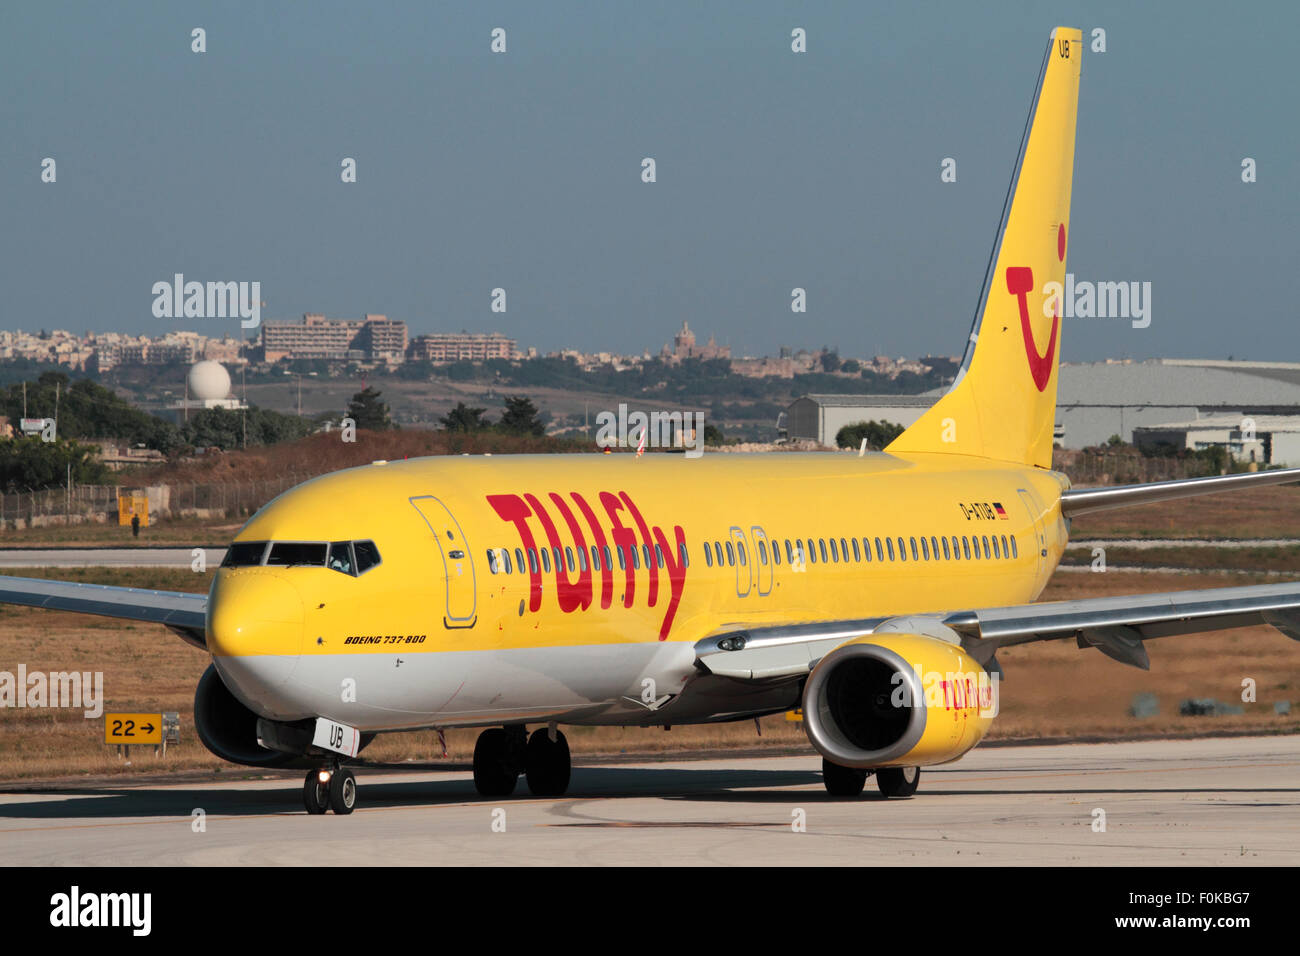 TUIfly Boeing 737-800 passenger jet plane taxiing for departure from Malta - Stock Image